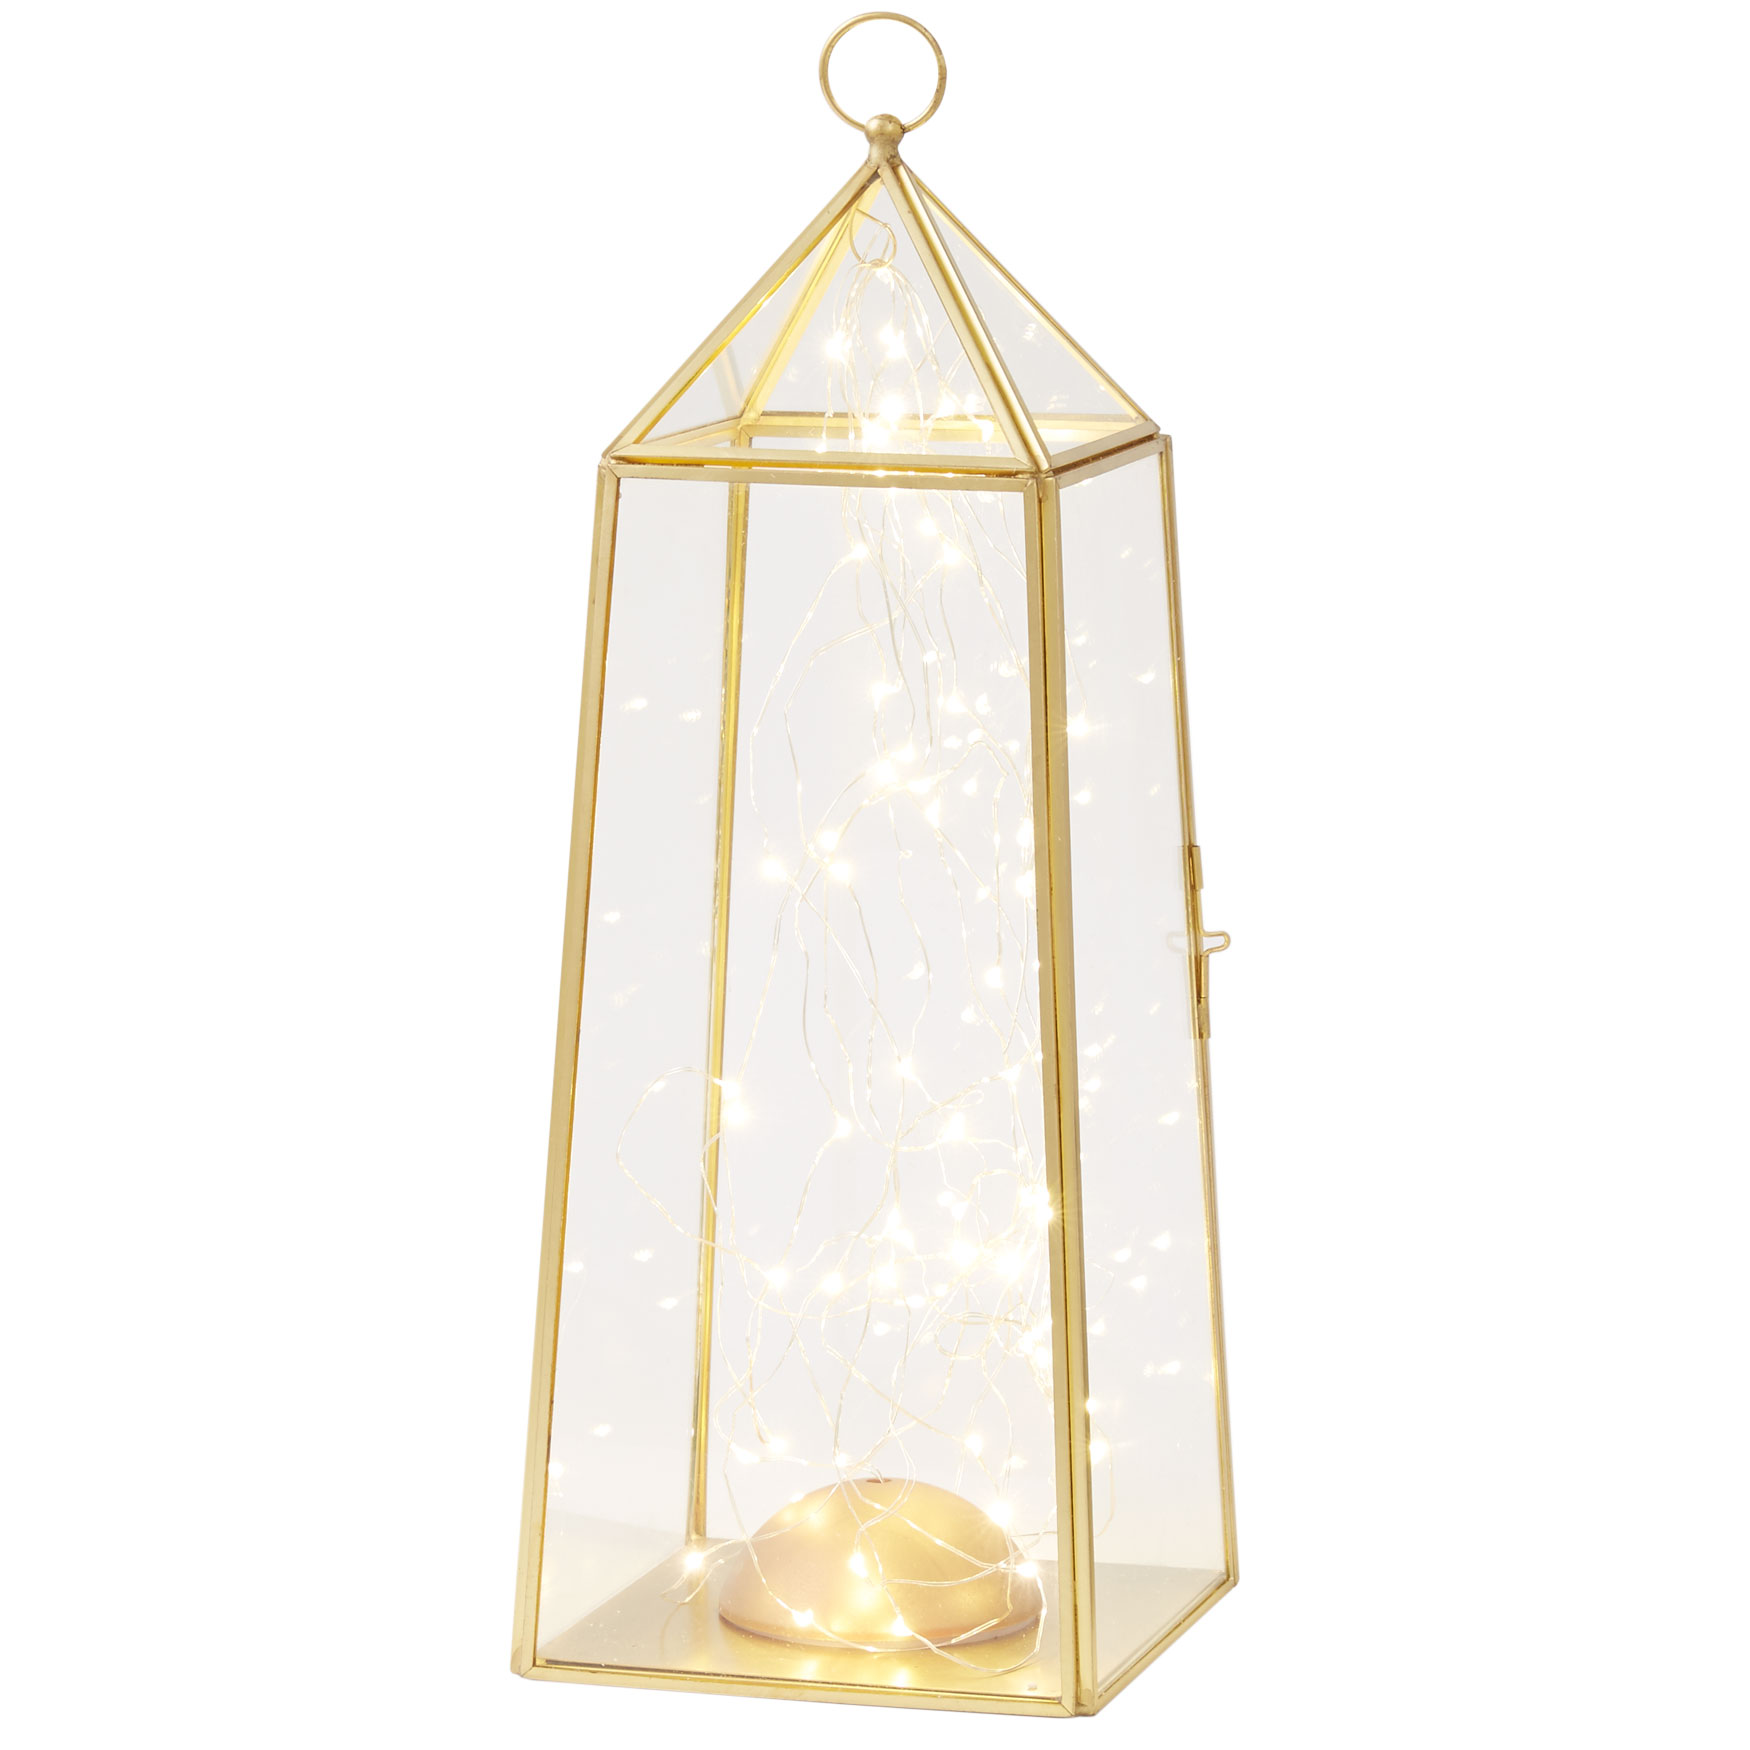 Medium Pre-Lit Glass Lantern, GOLD